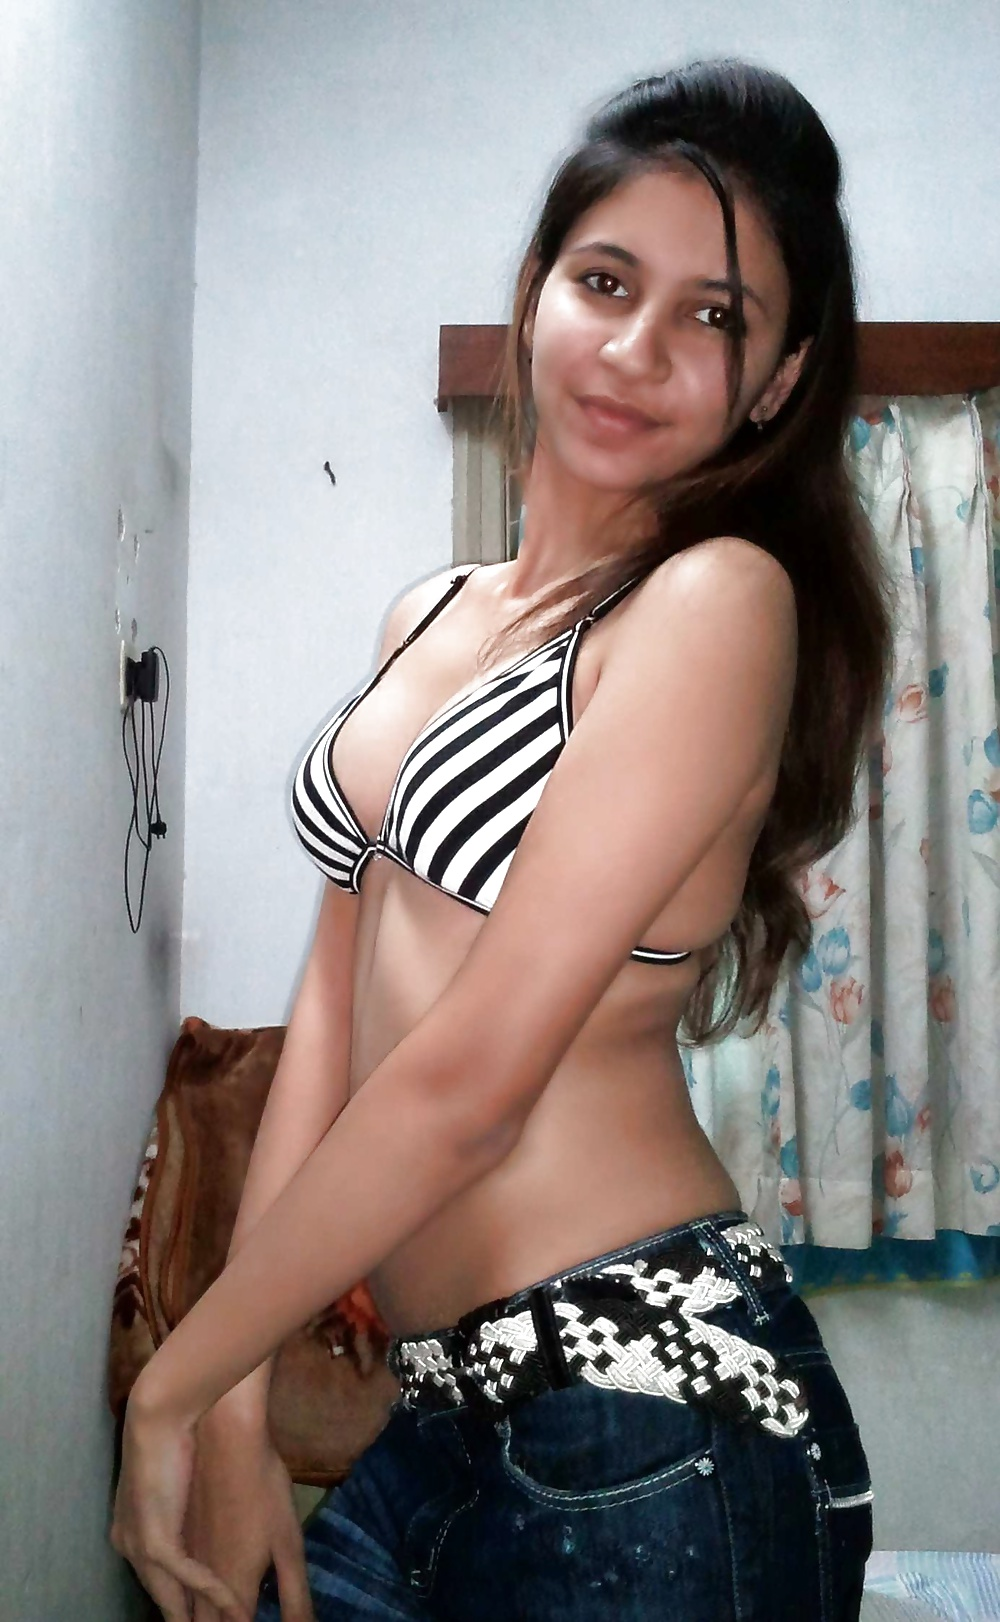 Cute bangalore girl nude show - 3 part 2